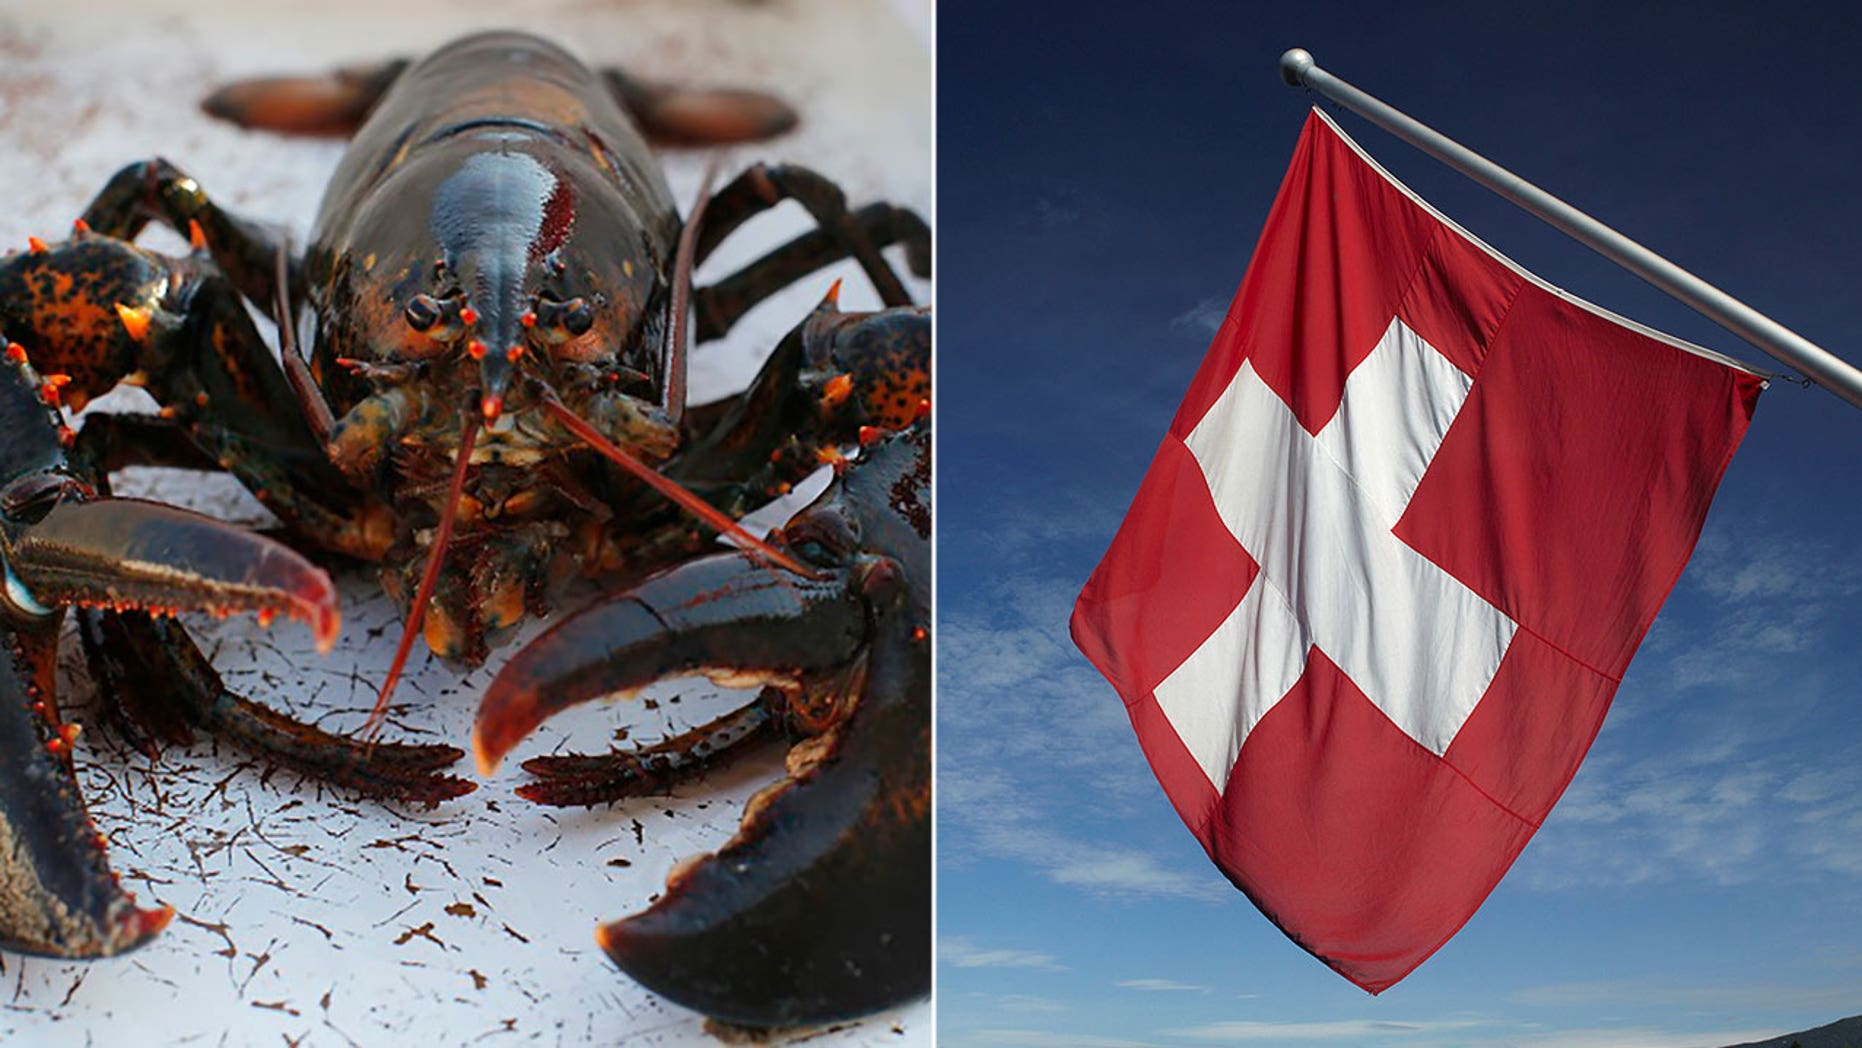 The Swiss government ruled that lobsters cannot be thrown into boiling water while alive.